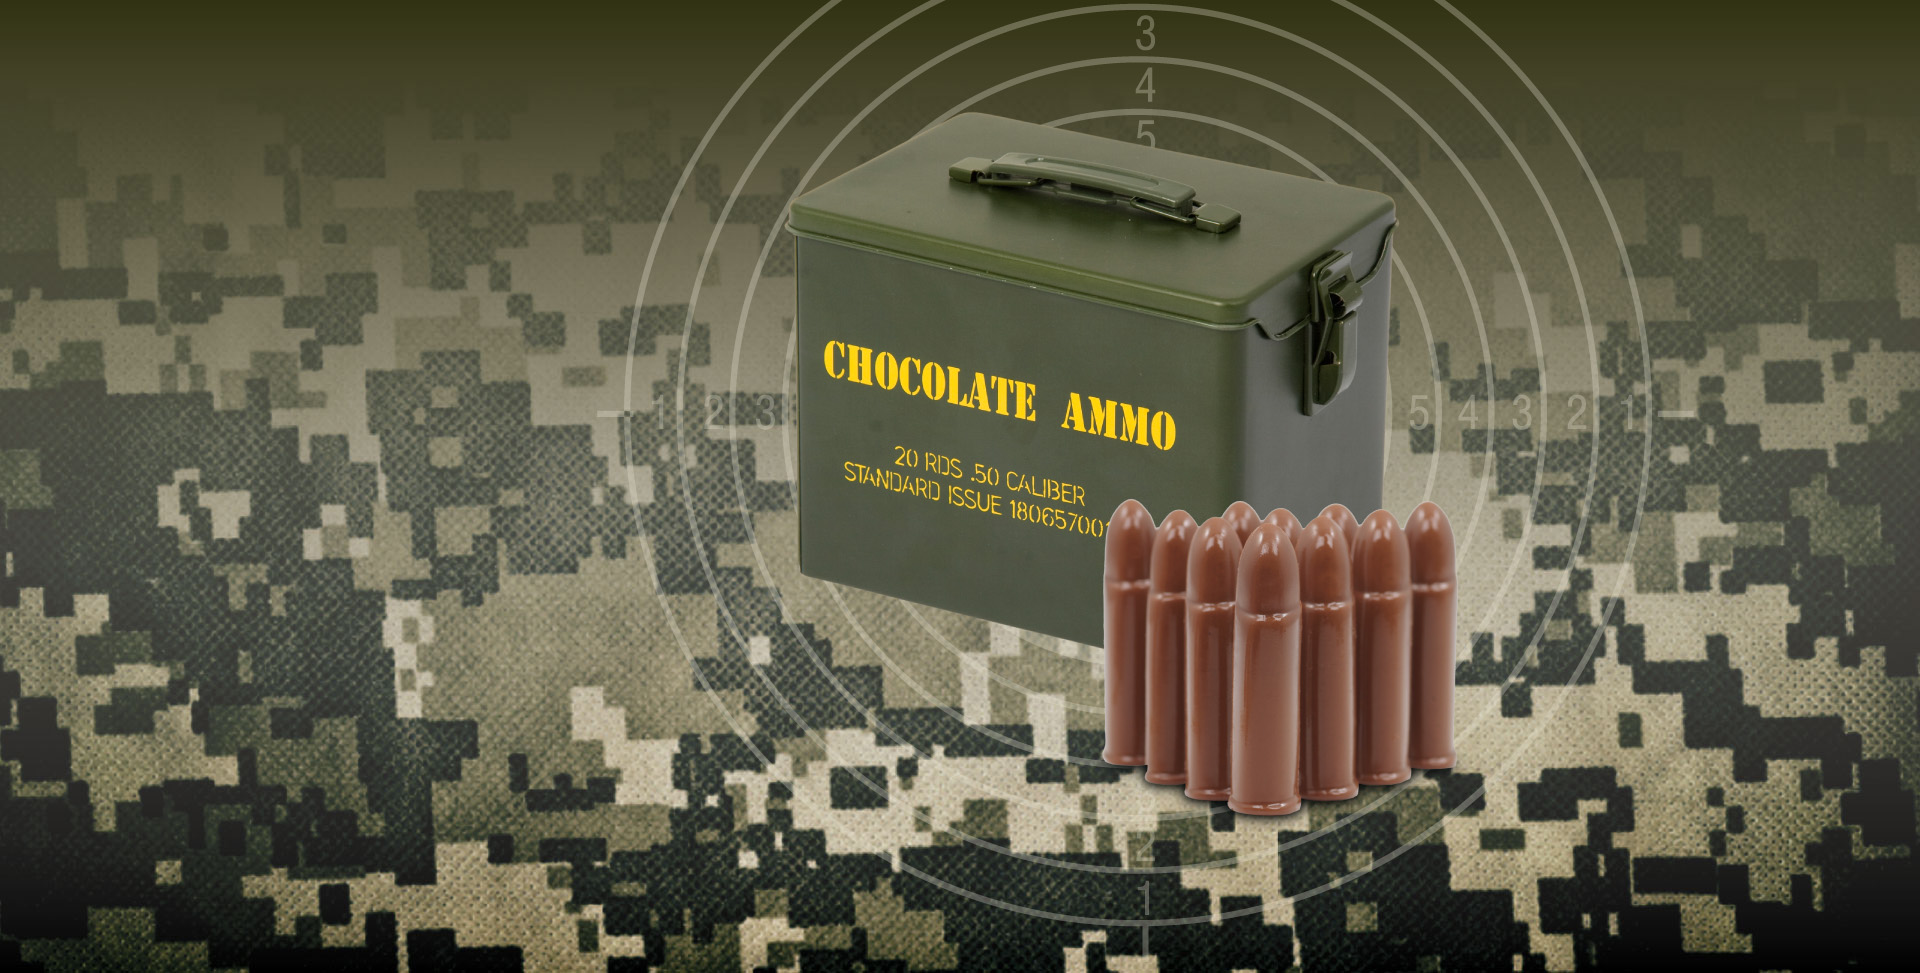 Chocolate Ammo